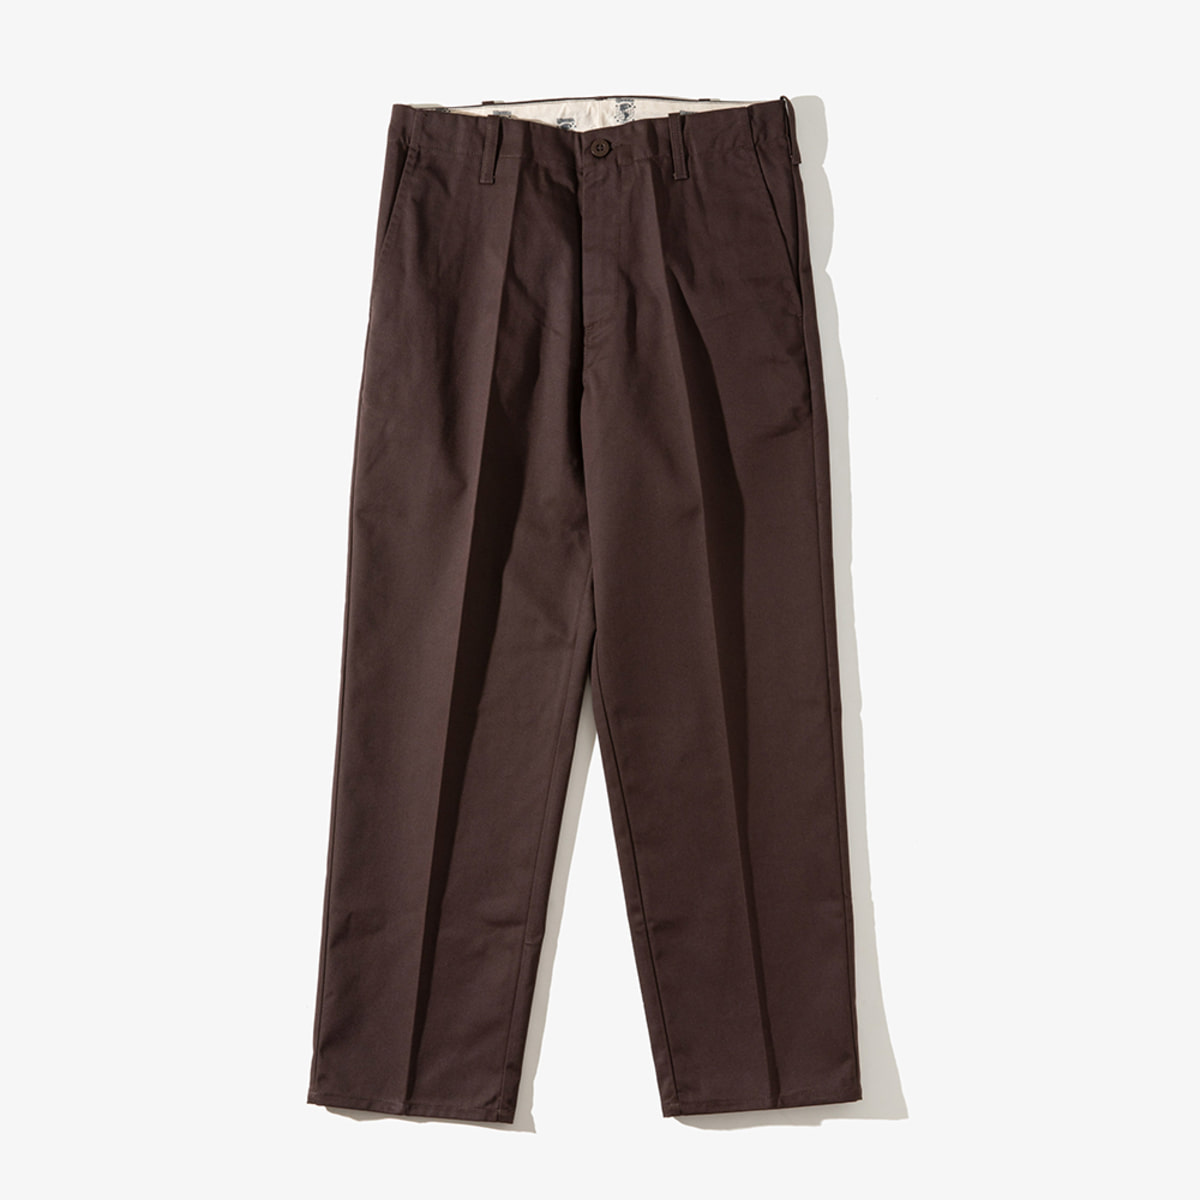 [T-03] STANDARD PANTS DARK BROWN